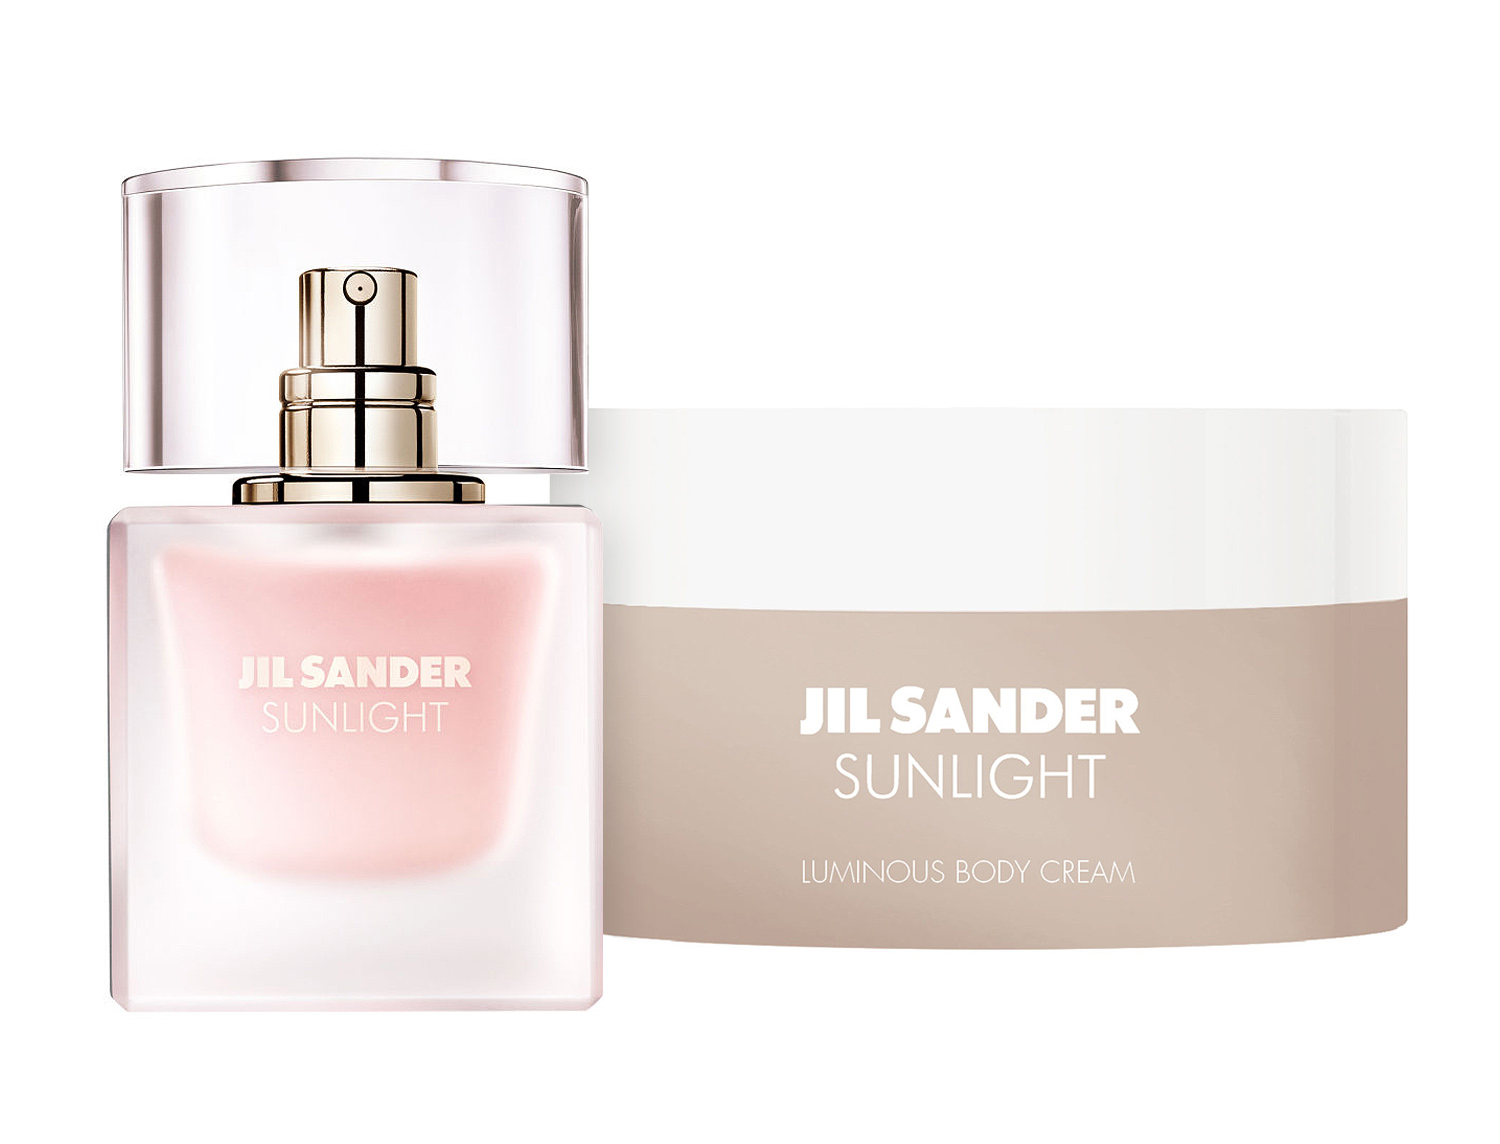 sunlight lumiere jil sander parfum ein neues parfum f r. Black Bedroom Furniture Sets. Home Design Ideas